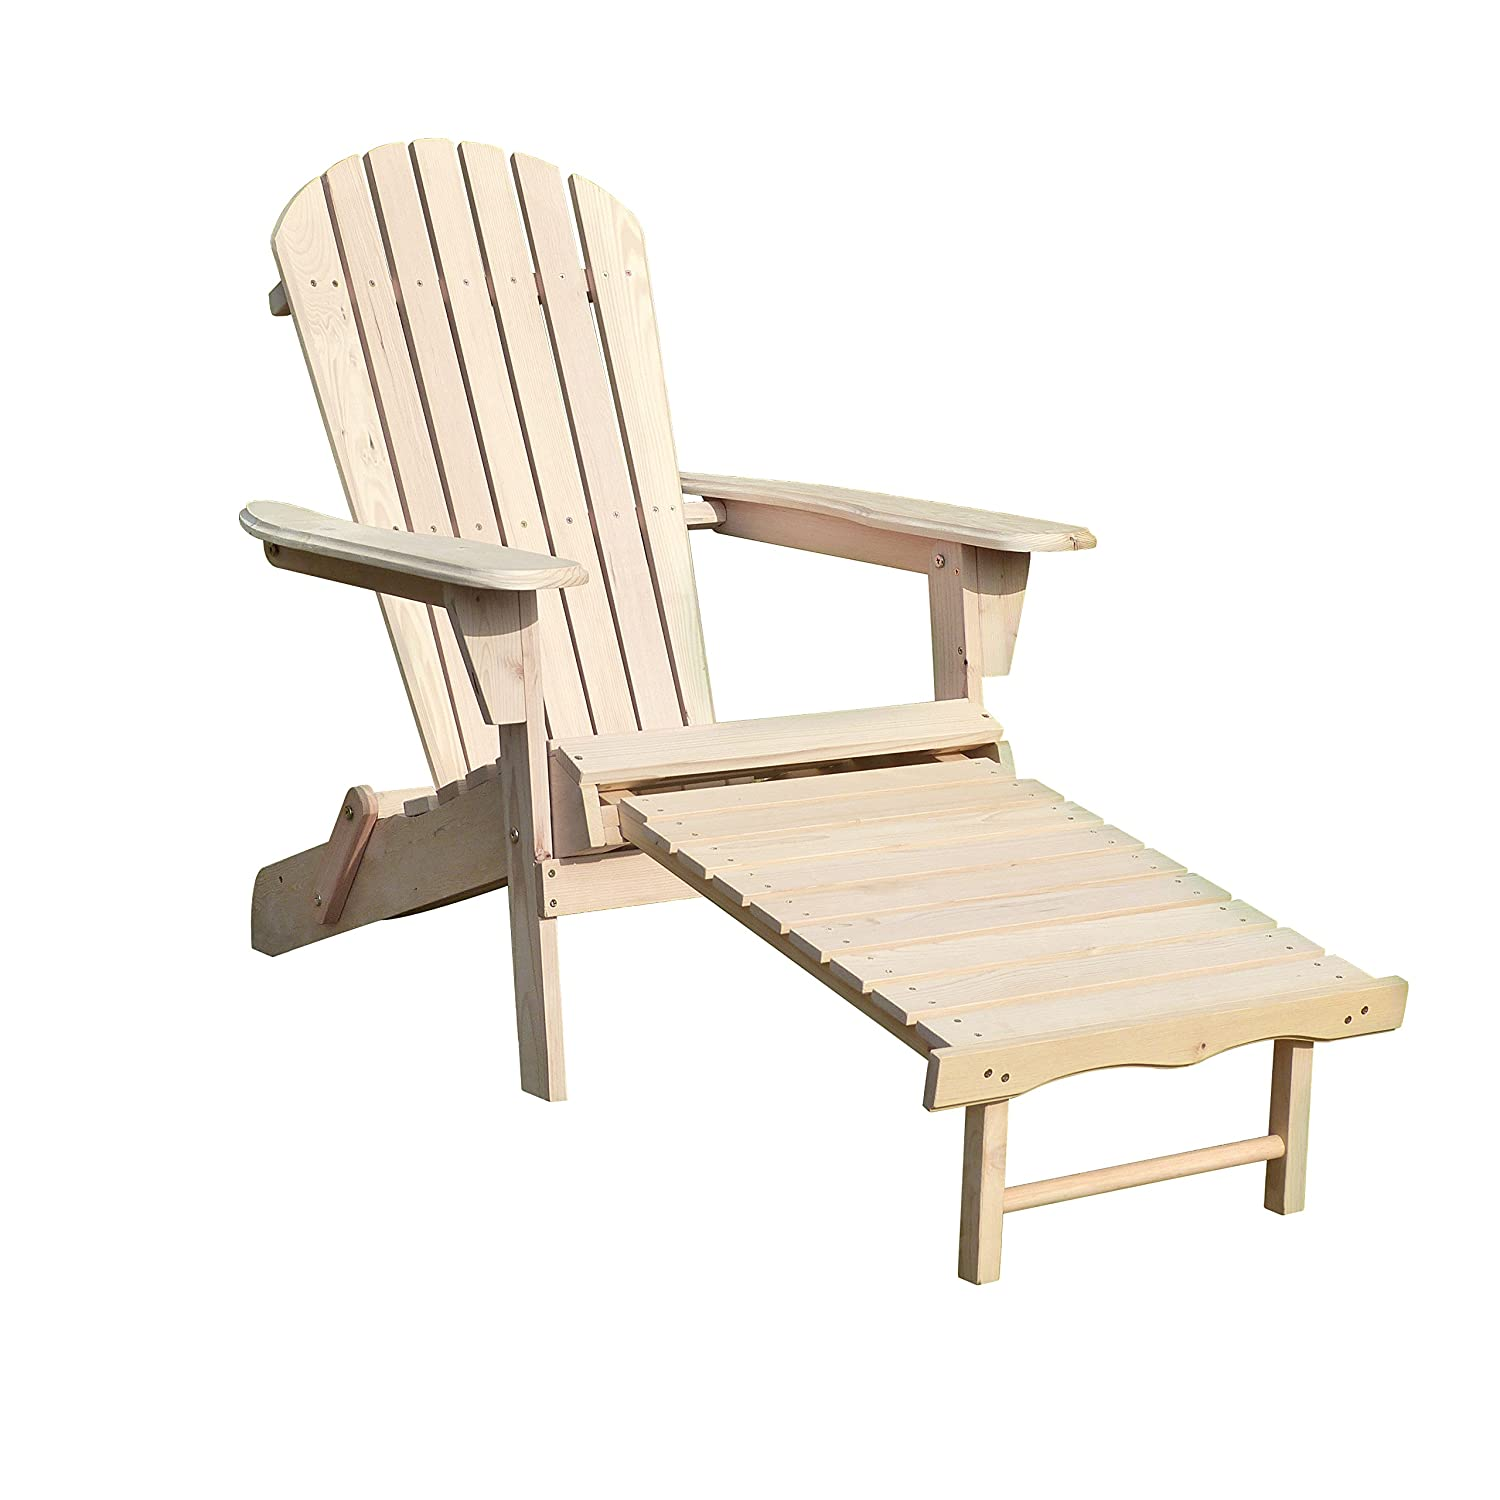 Superb Merry Garden Foldable Wooden Adirondack Chair Kit With Pullout Ottoman Outdoor Garden Lawn Deck Chair Unfinished Machost Co Dining Chair Design Ideas Machostcouk